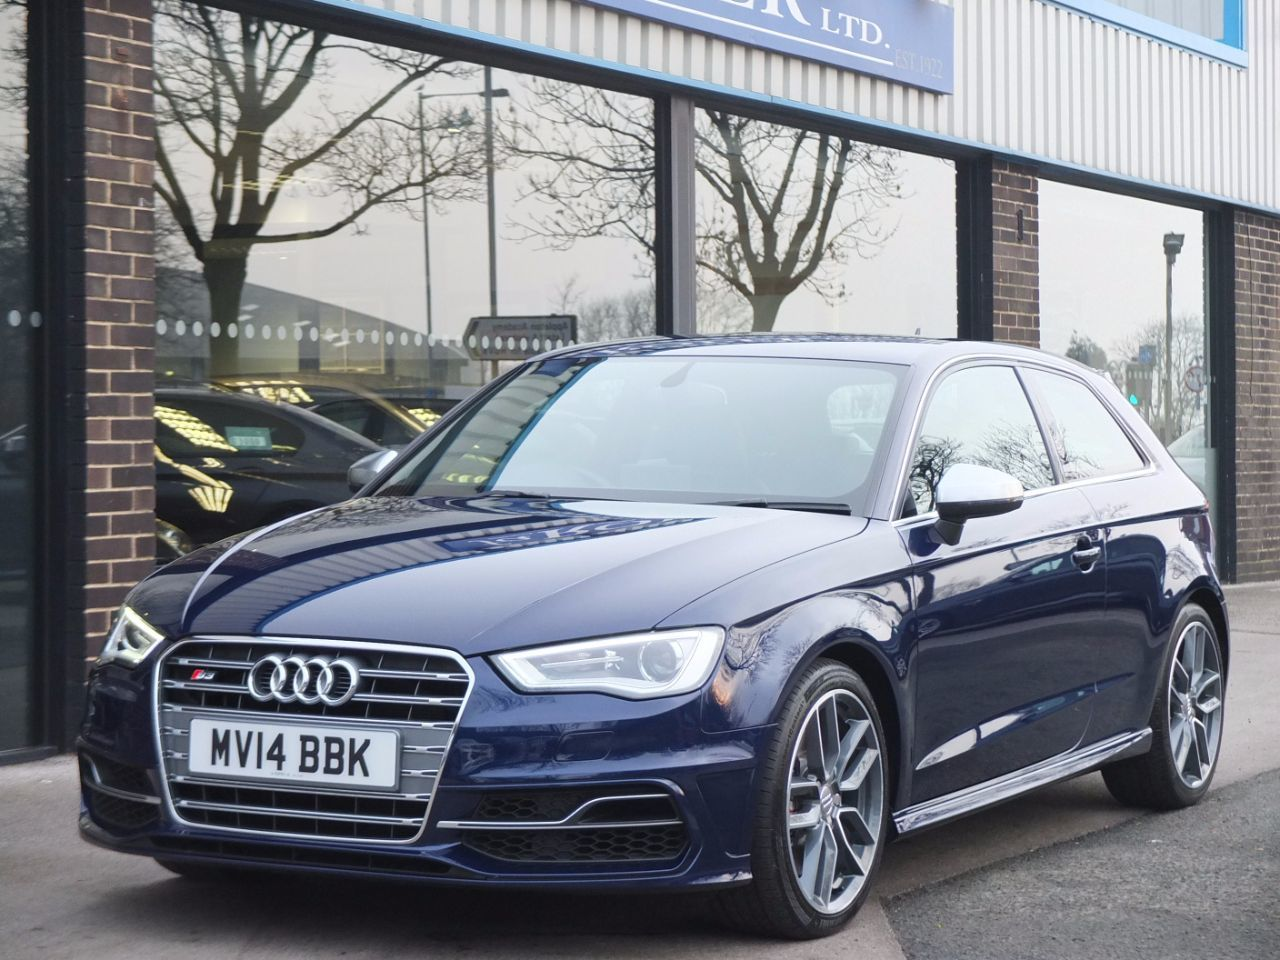 Audi A3 S3 2.0 TFSI quattro S tronic 3 door Hatchback Petrol Estoril Blue MetallicAudi A3 S3 2.0 TFSI quattro S tronic 3 door Hatchback Petrol Estoril Blue Metallic at fa Roper Ltd Bradford